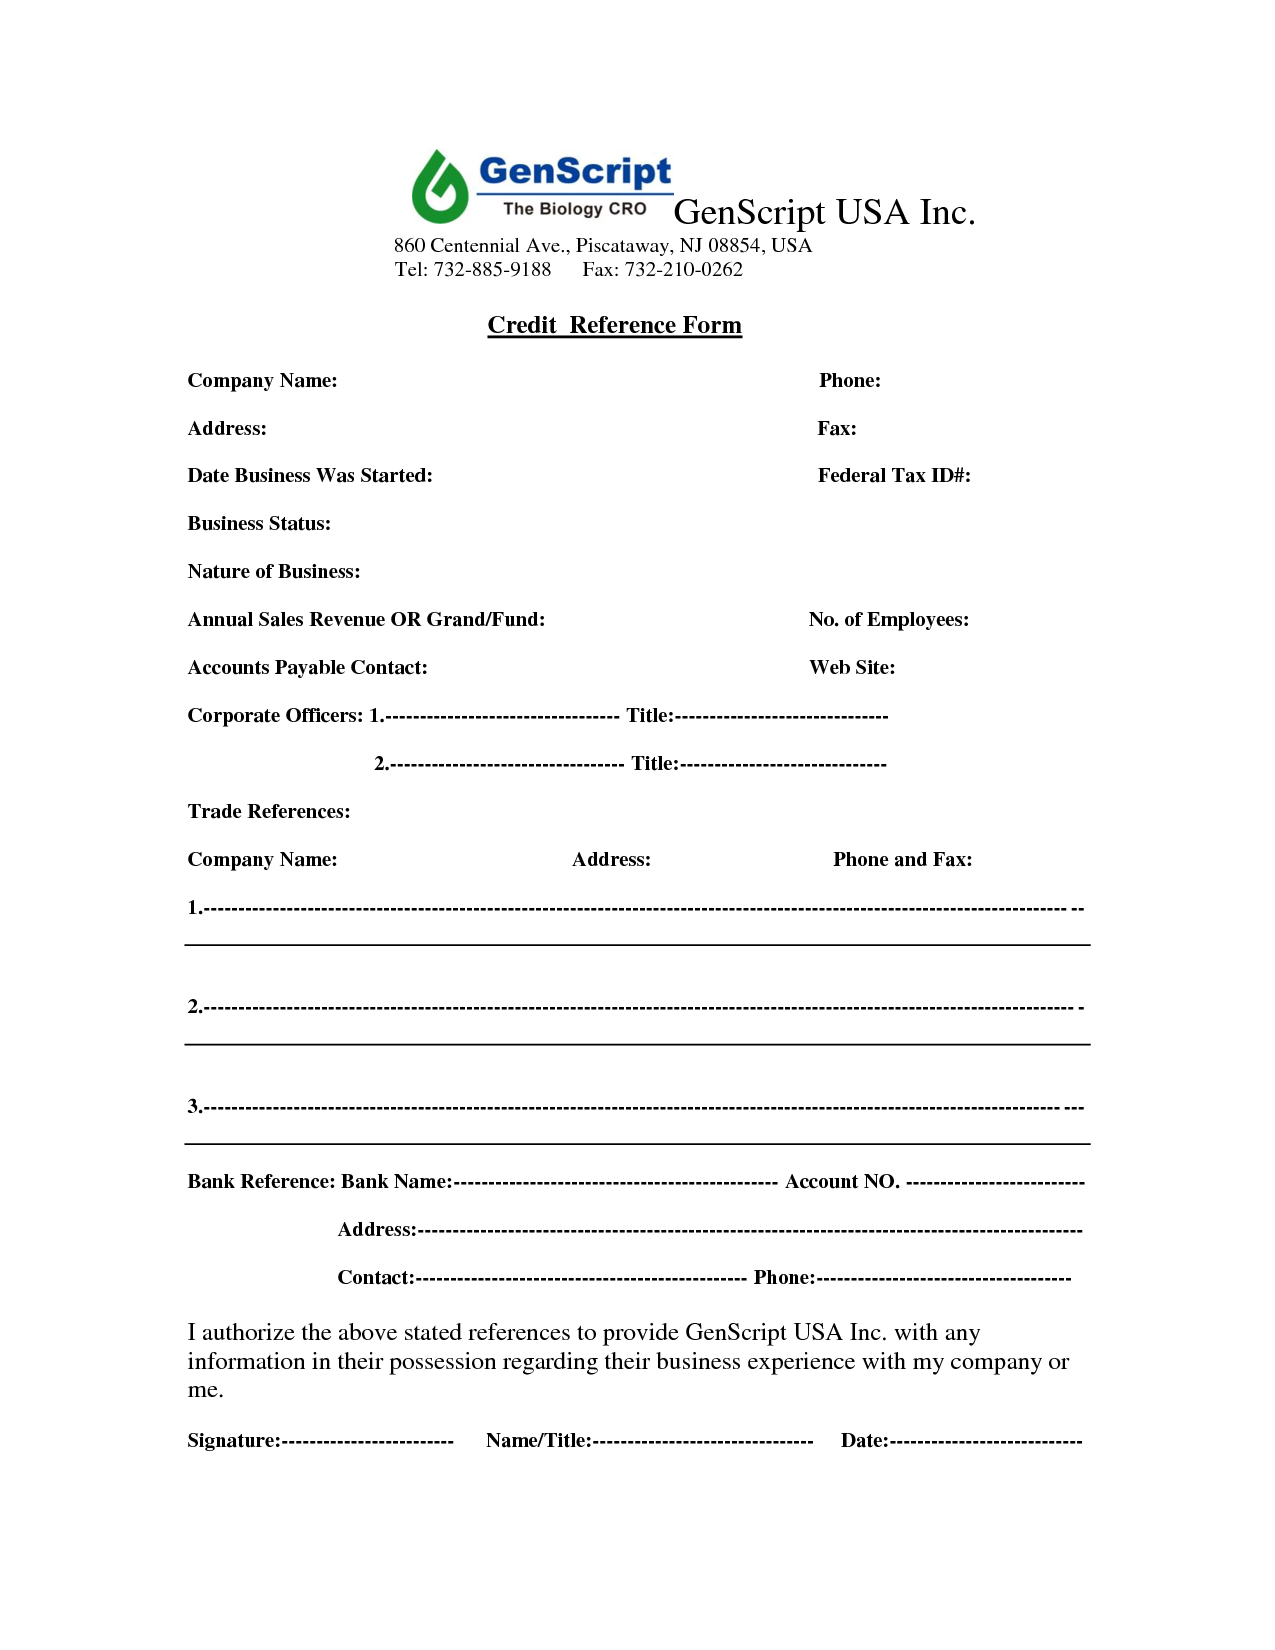 Credit Report: Company Credit Report Usa - Business Credit Reference - Free Credit Report Printable Form